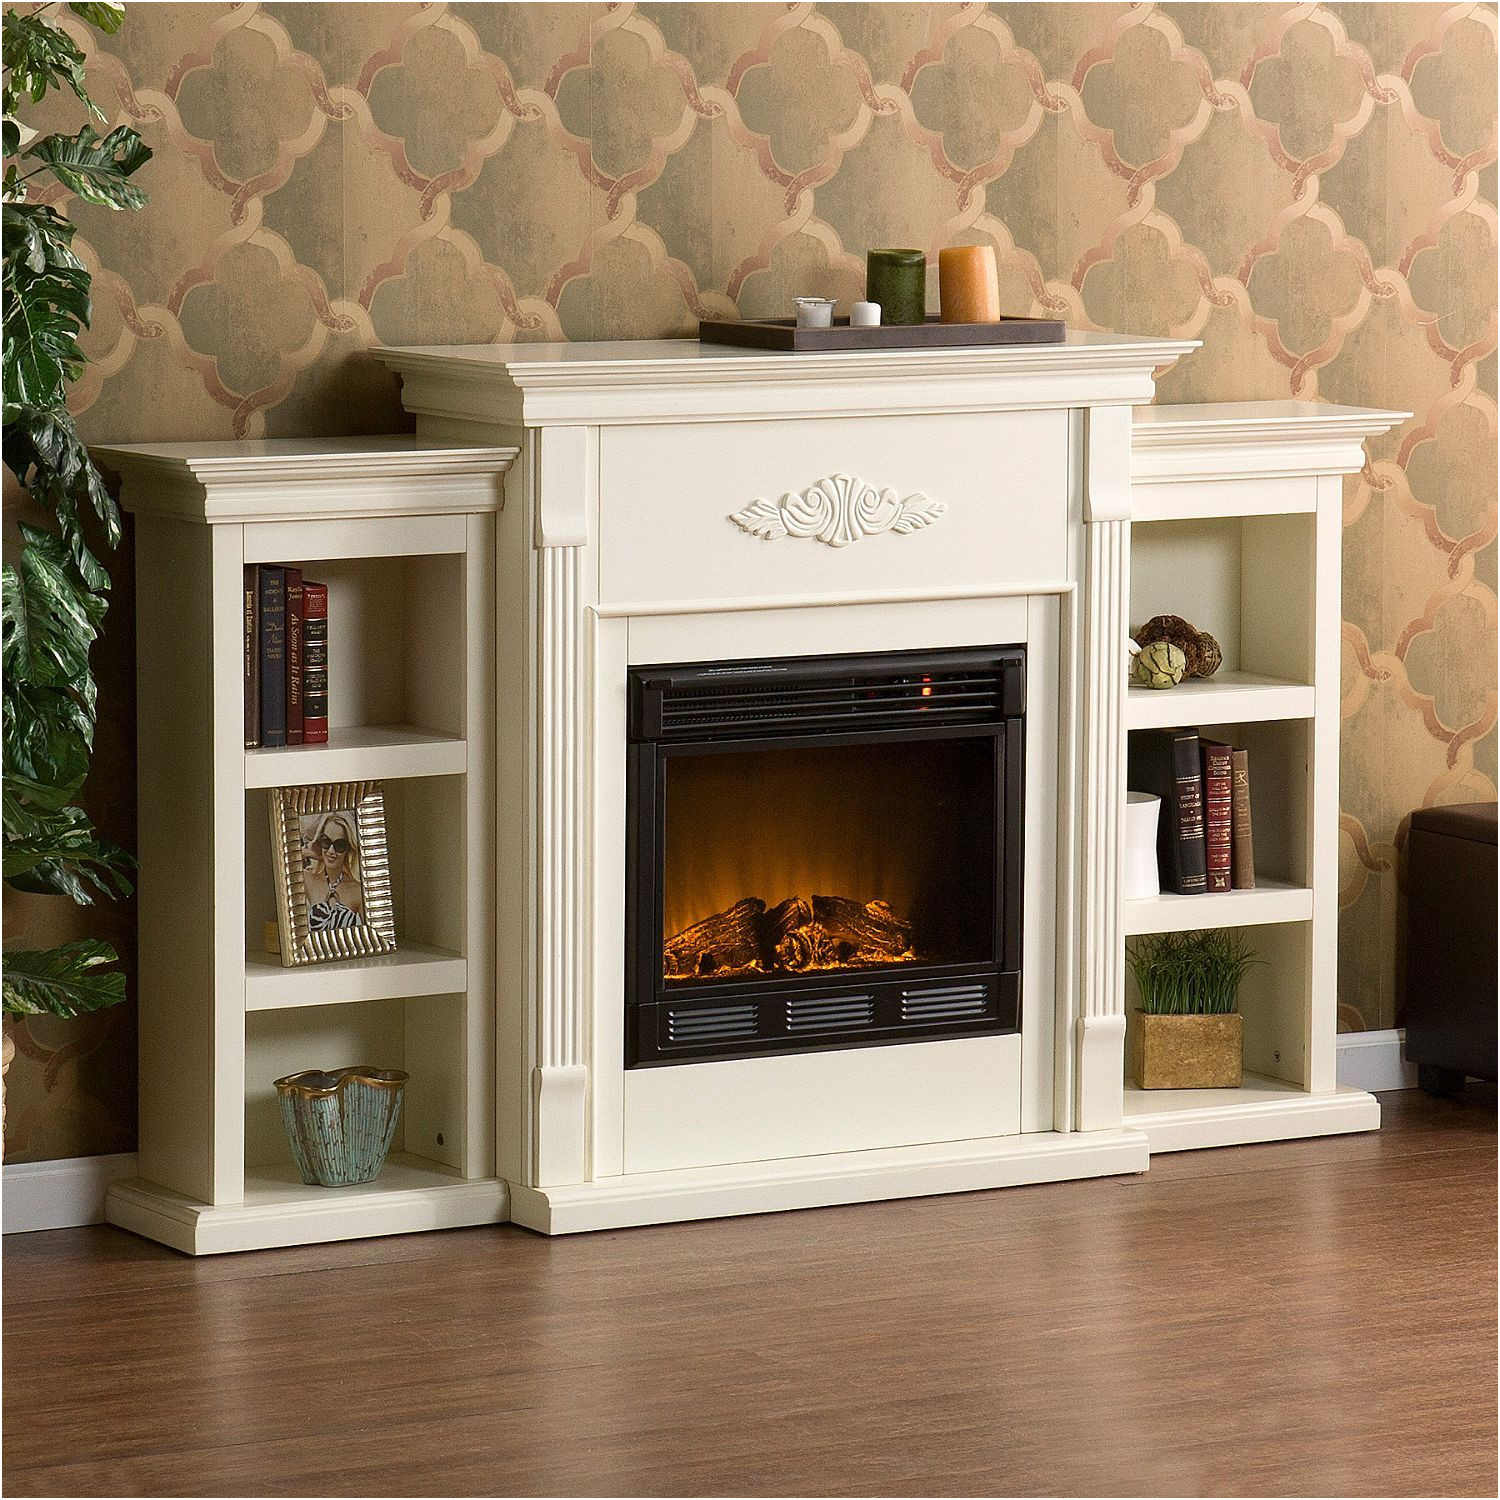 Electric Fireplace Idea New Emerson Electric Fireplace Ivory Sam S Club